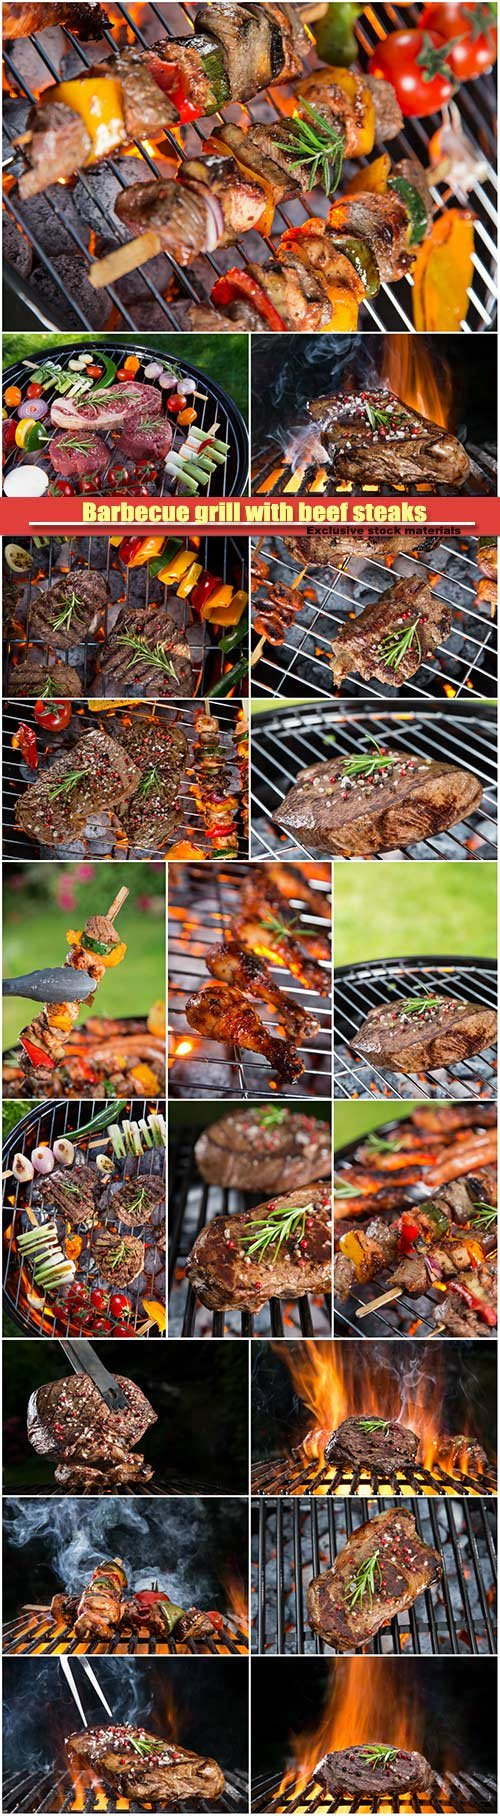 Barbecue grill with beef steaks and sea fishes